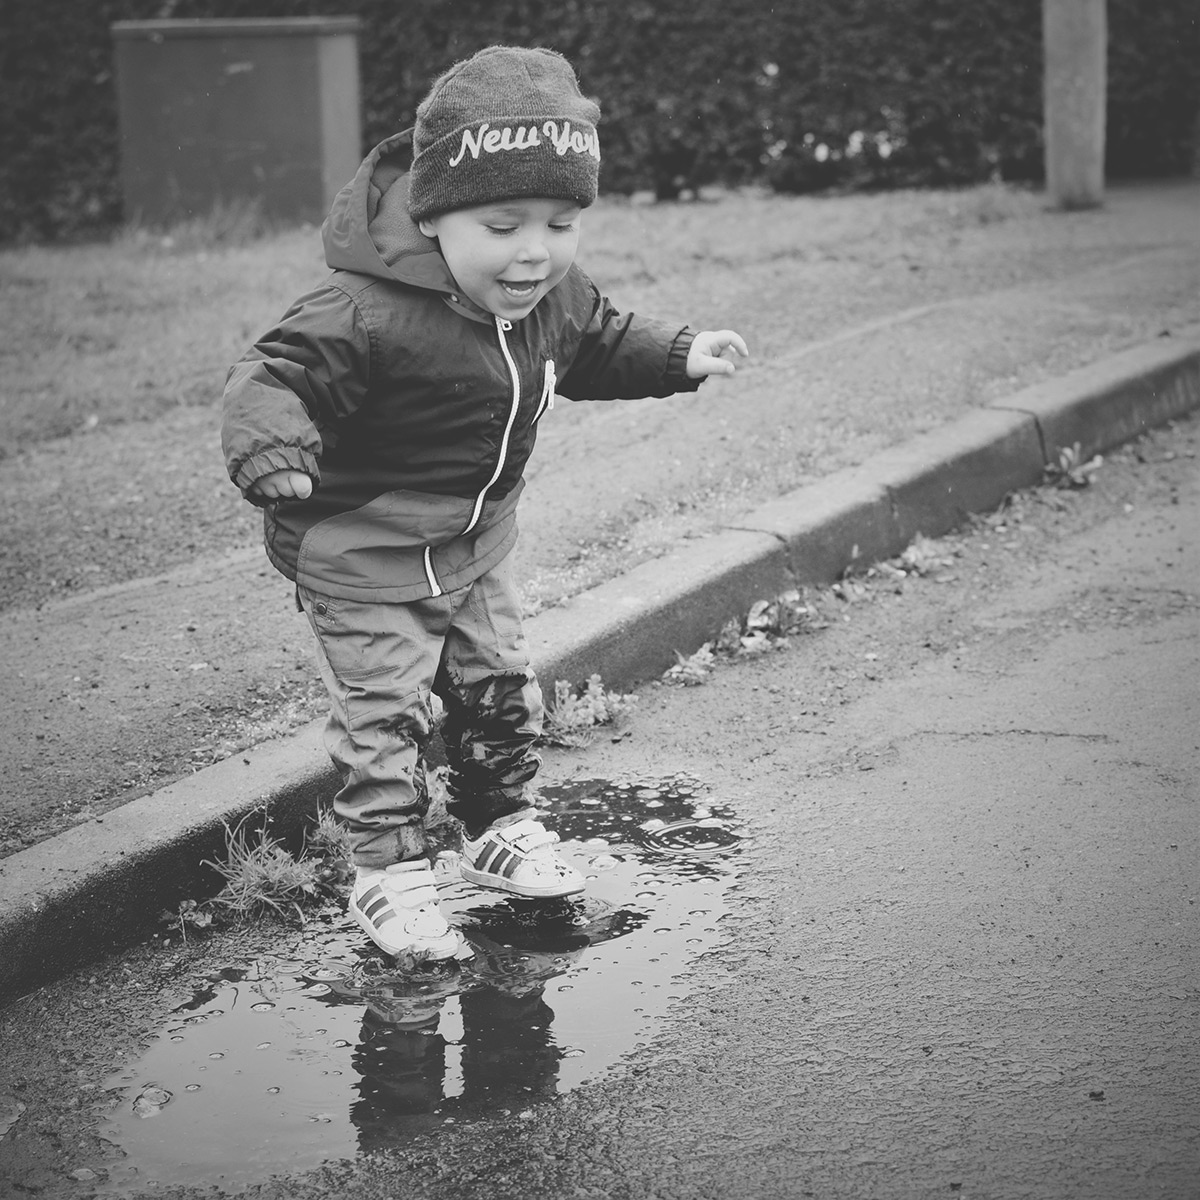 Our month in insta-snaps; April 2016 - Toddler action shot jumping into a muddy puddle splashing